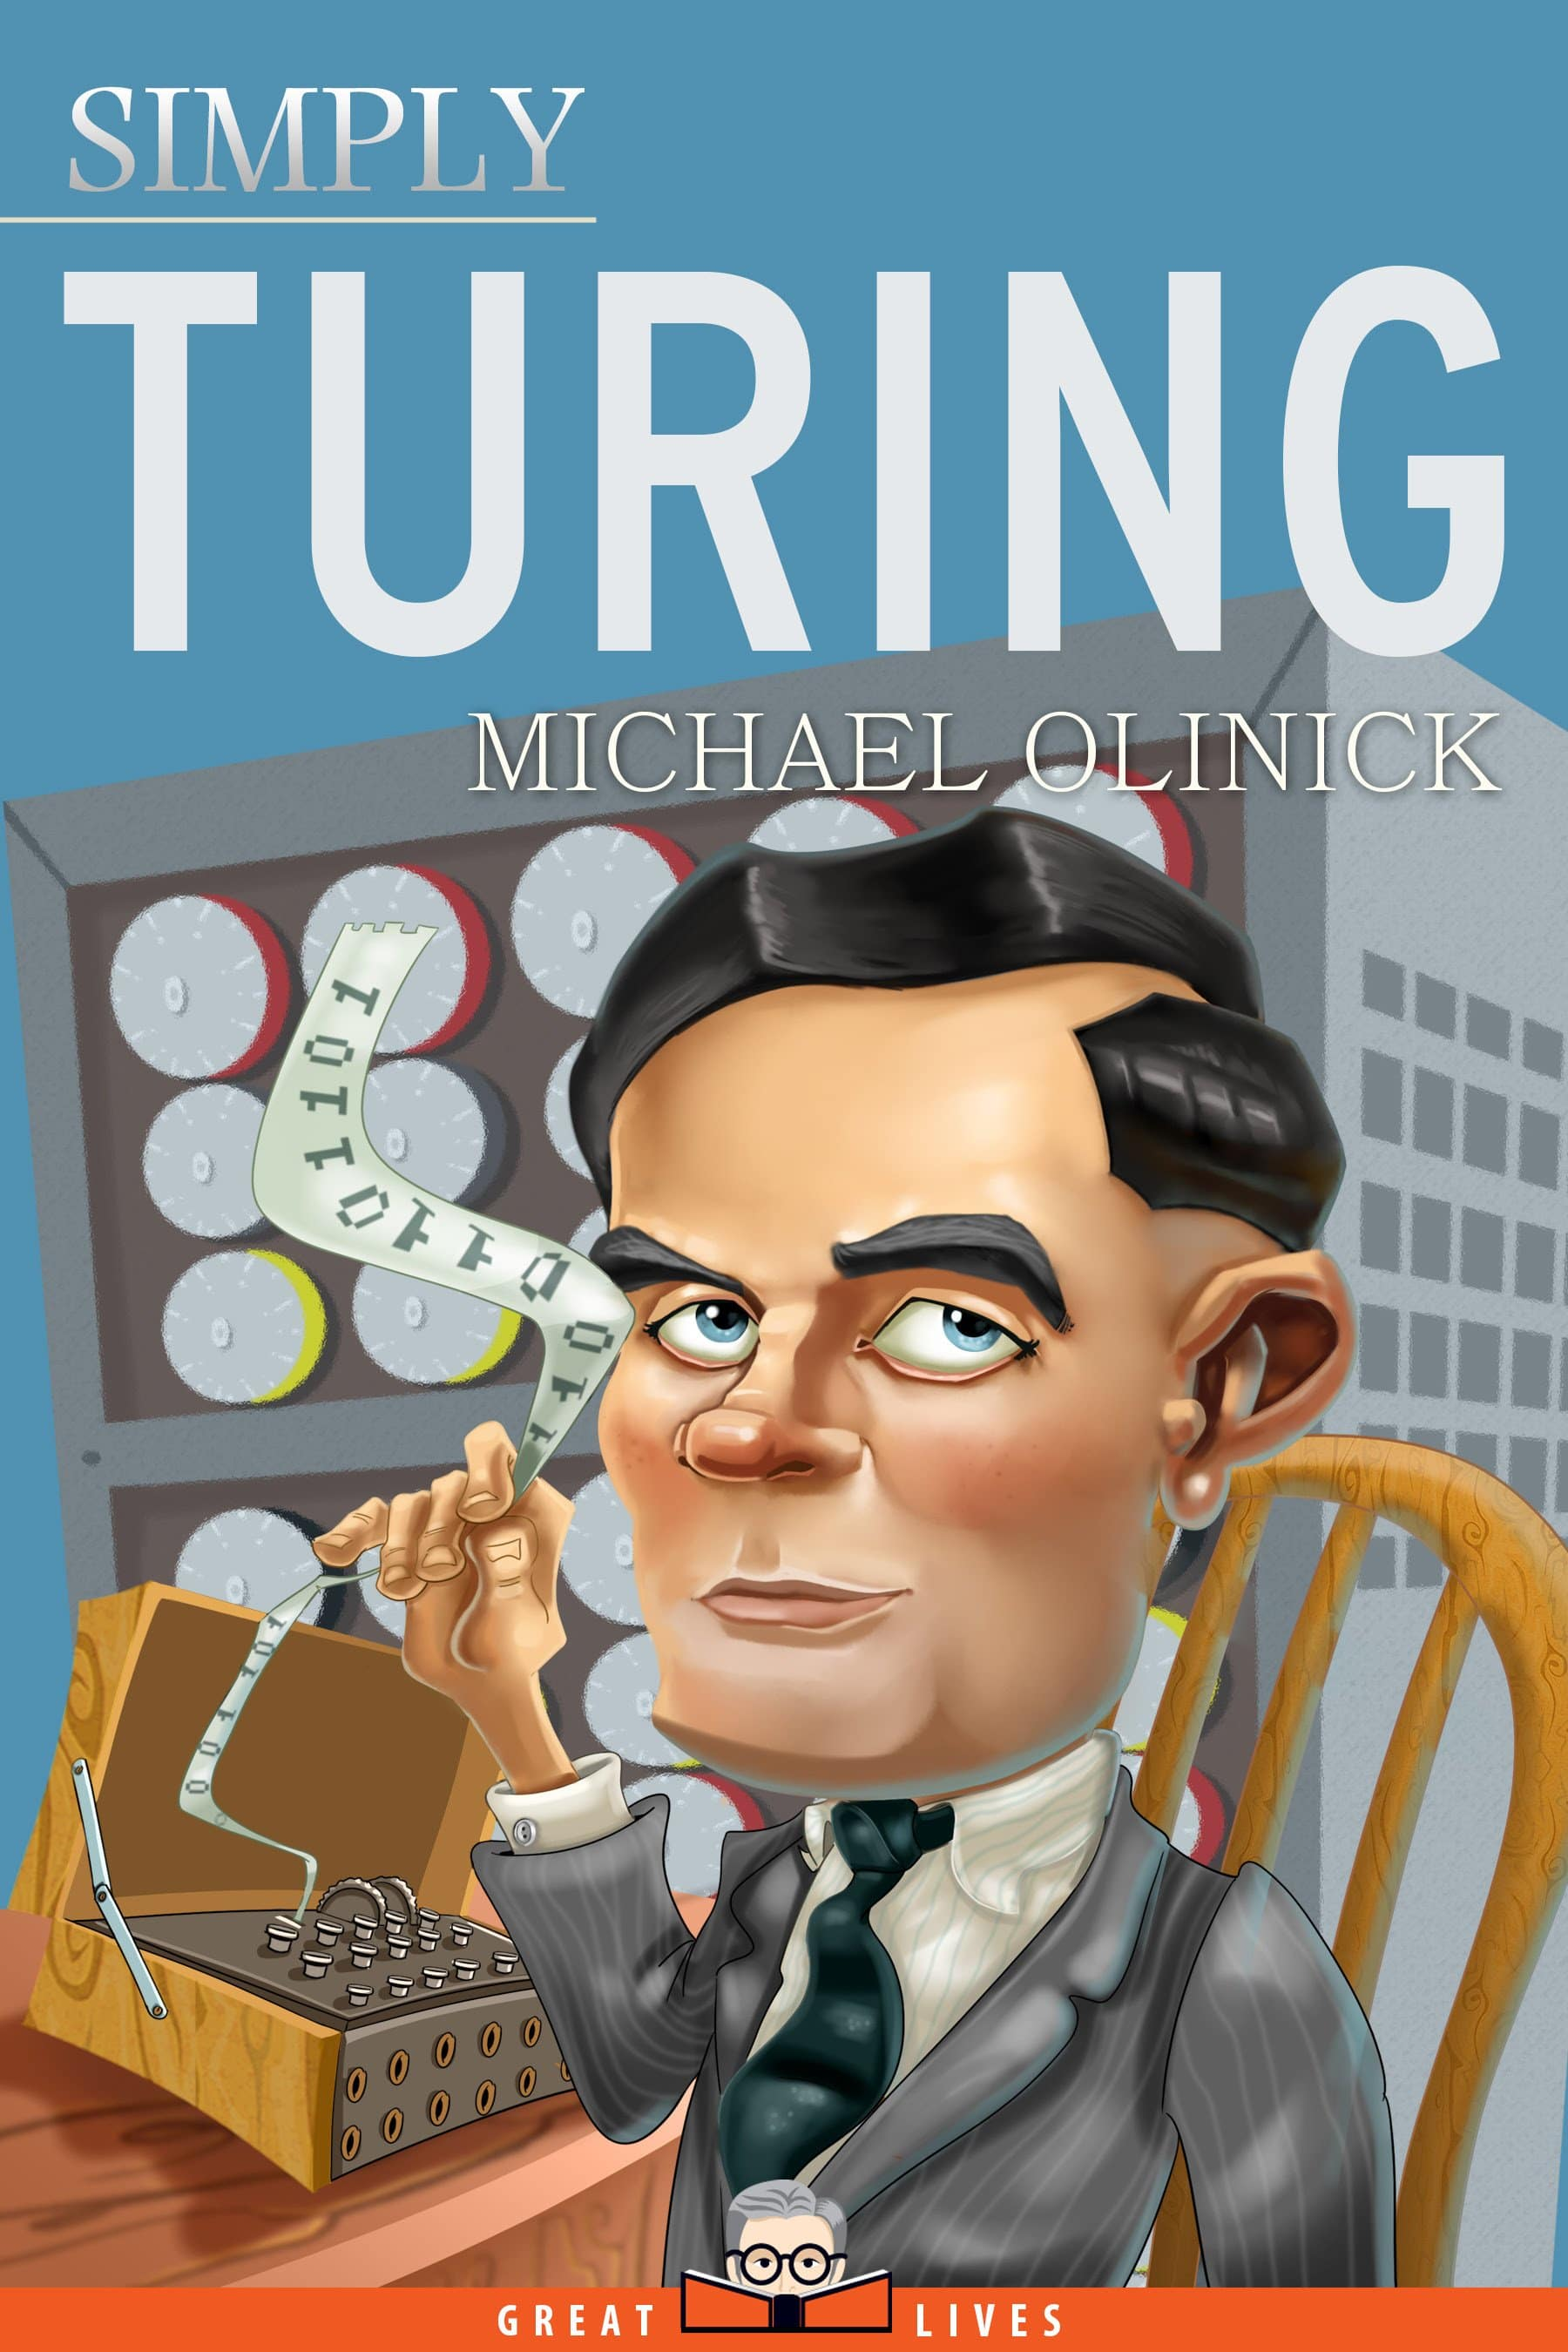 ac0f67042e87a201c7ba4420ae3addd4 2 - New Book on British Logician and Codebreaker Alan Turing Offers an Accessible and Engaging Introduction to the Mathematician's Life and Work